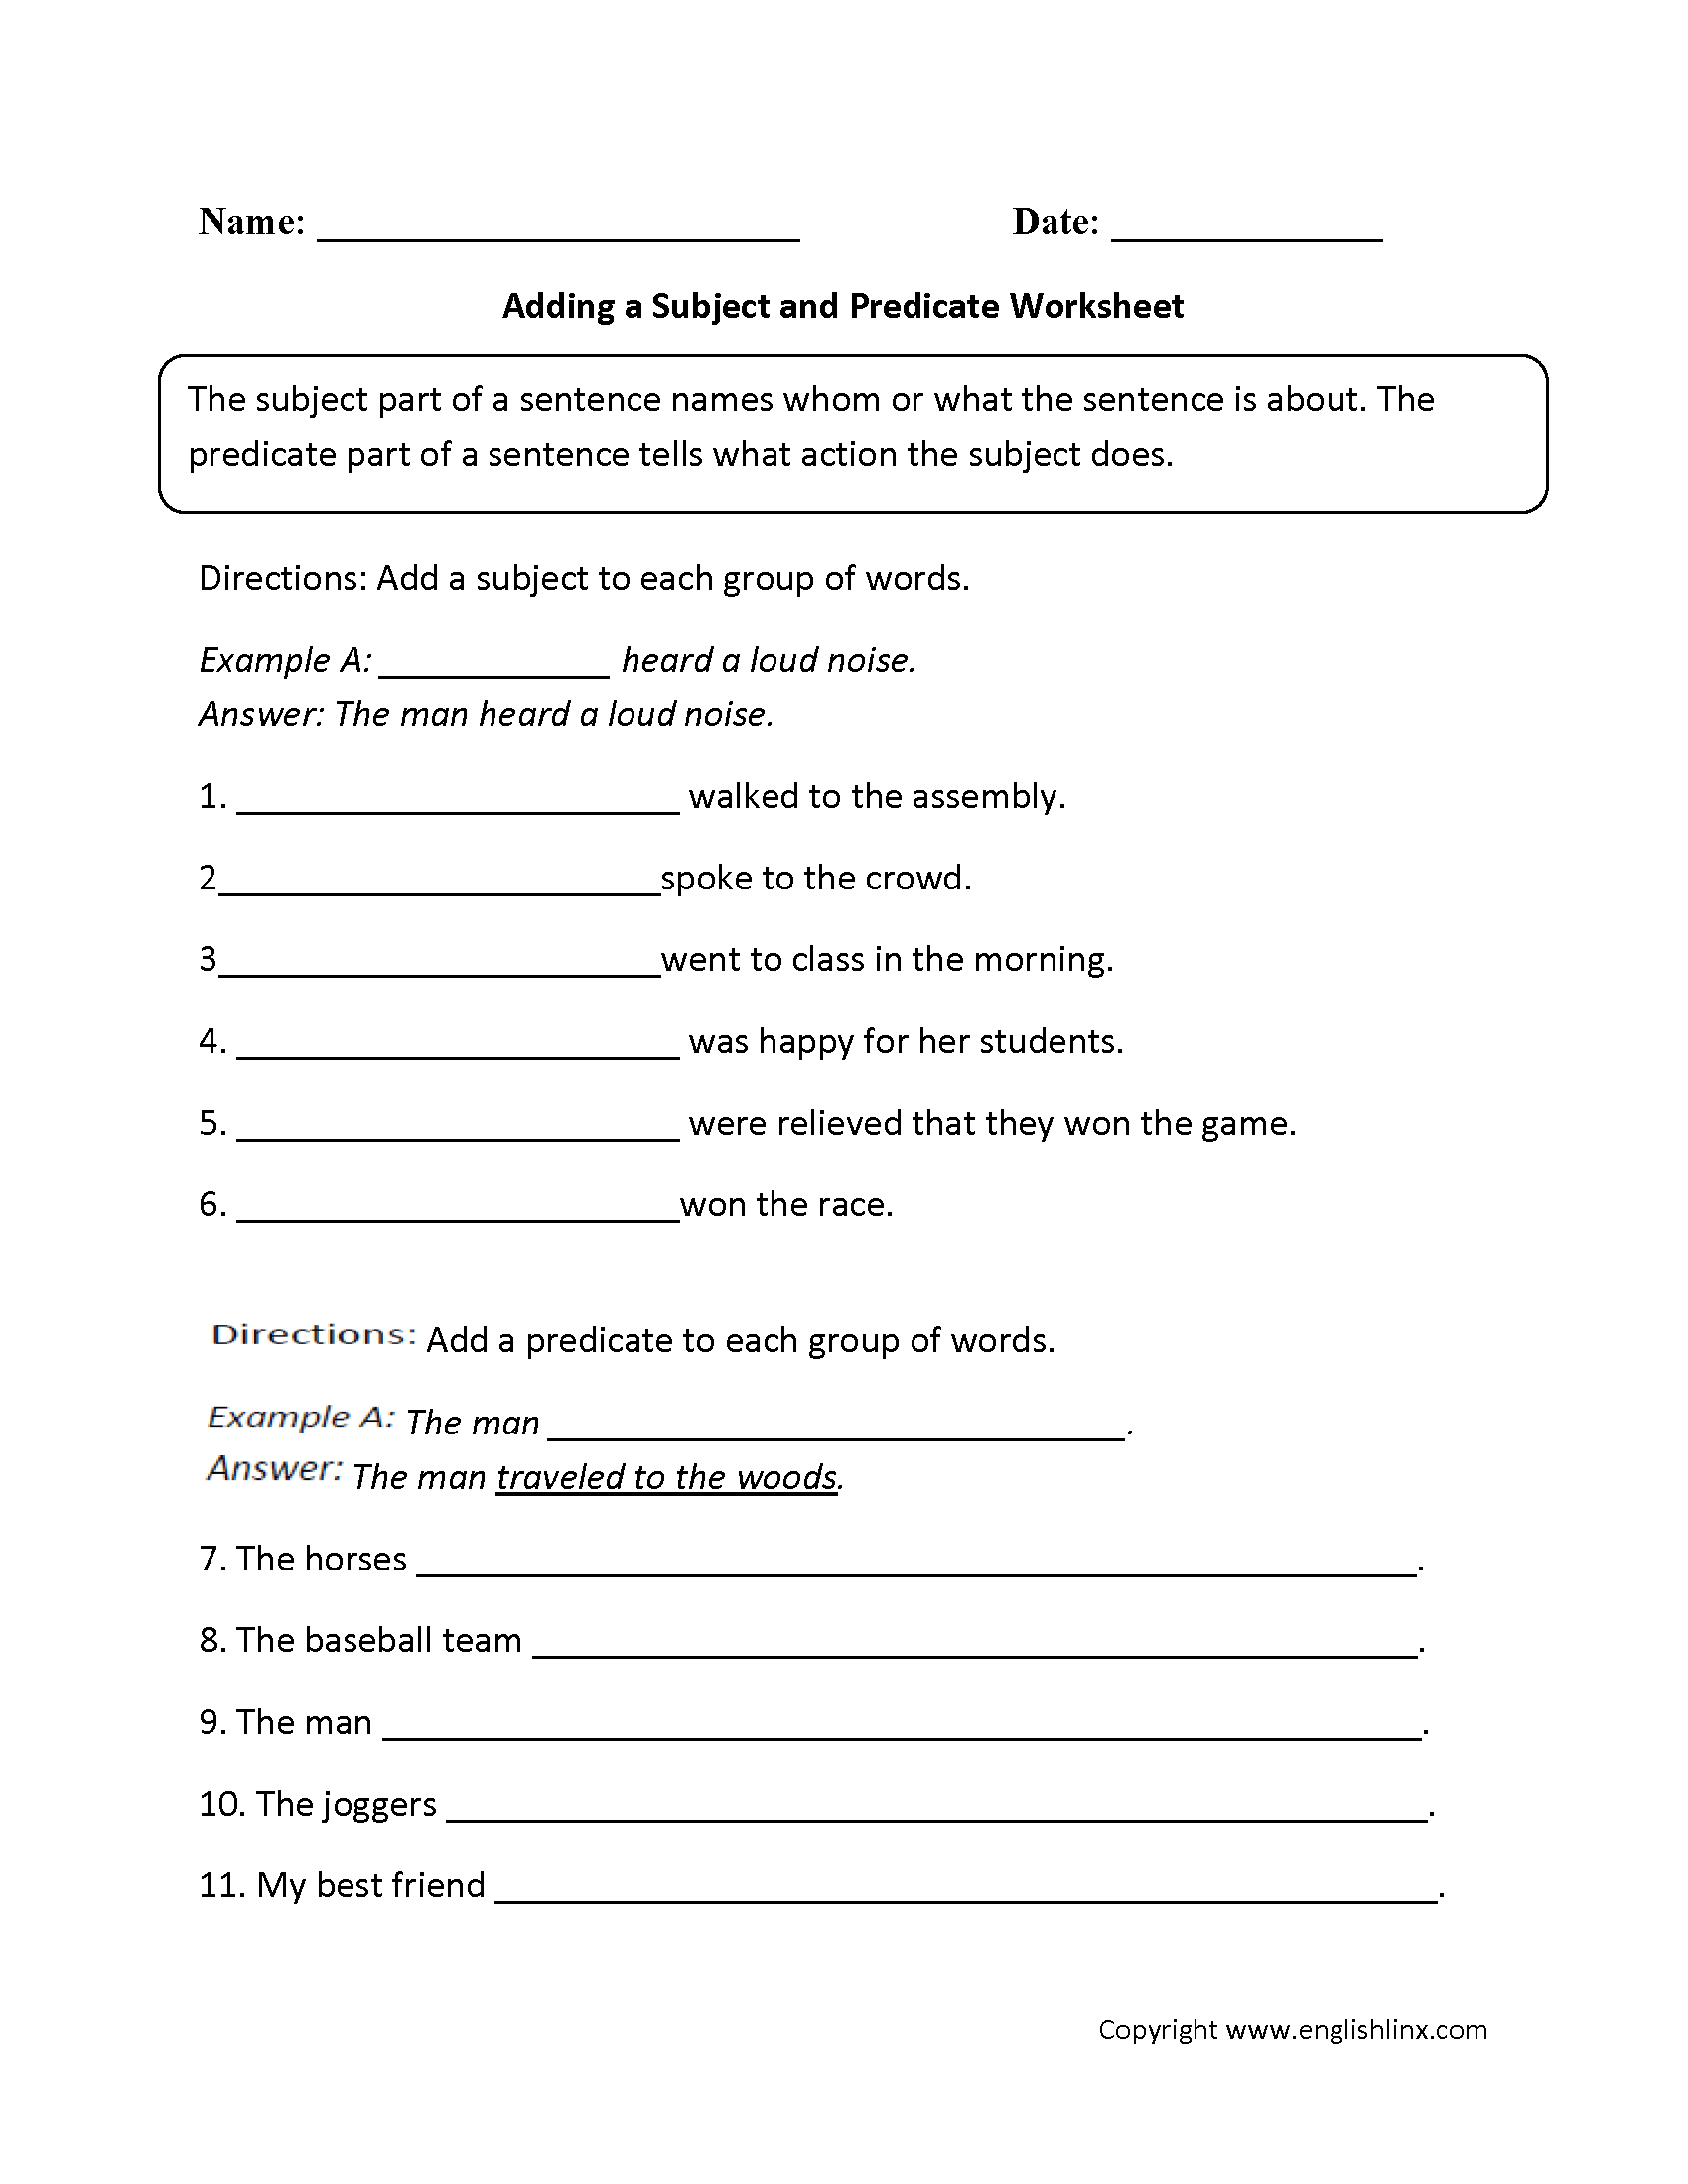 Englishlinx | Subject And Predicate Worksheets - 9Th Grade English | 9Th Grade Printable Worksheets Free